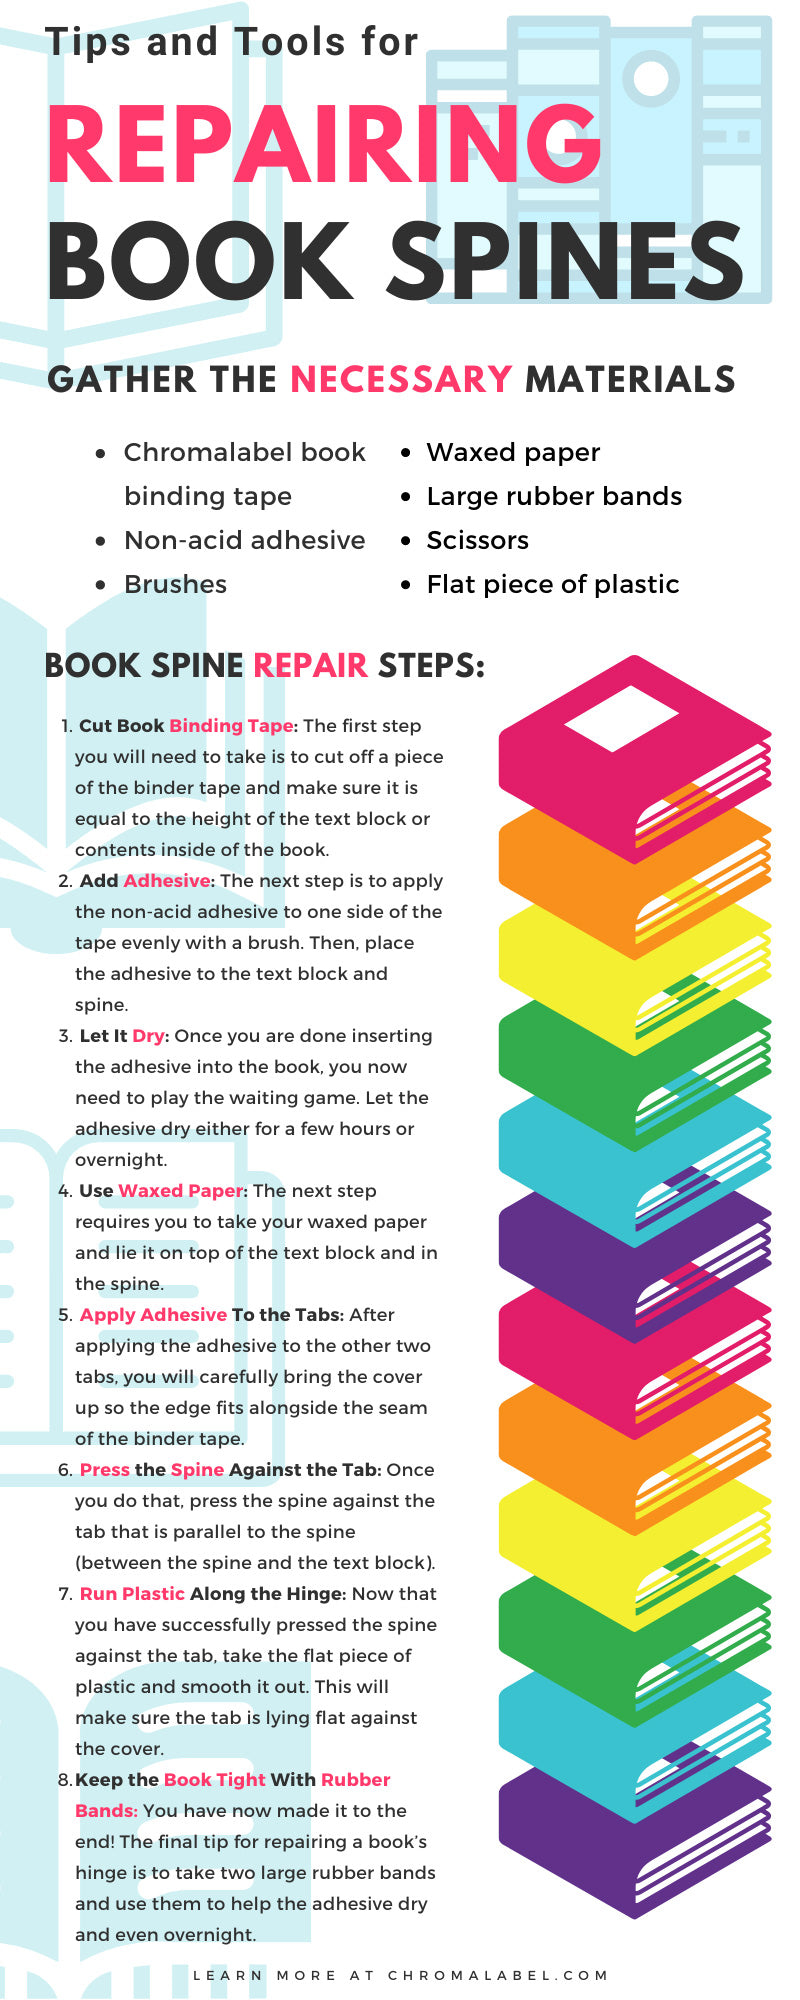 Tips and Tools for Repairing Book Spines